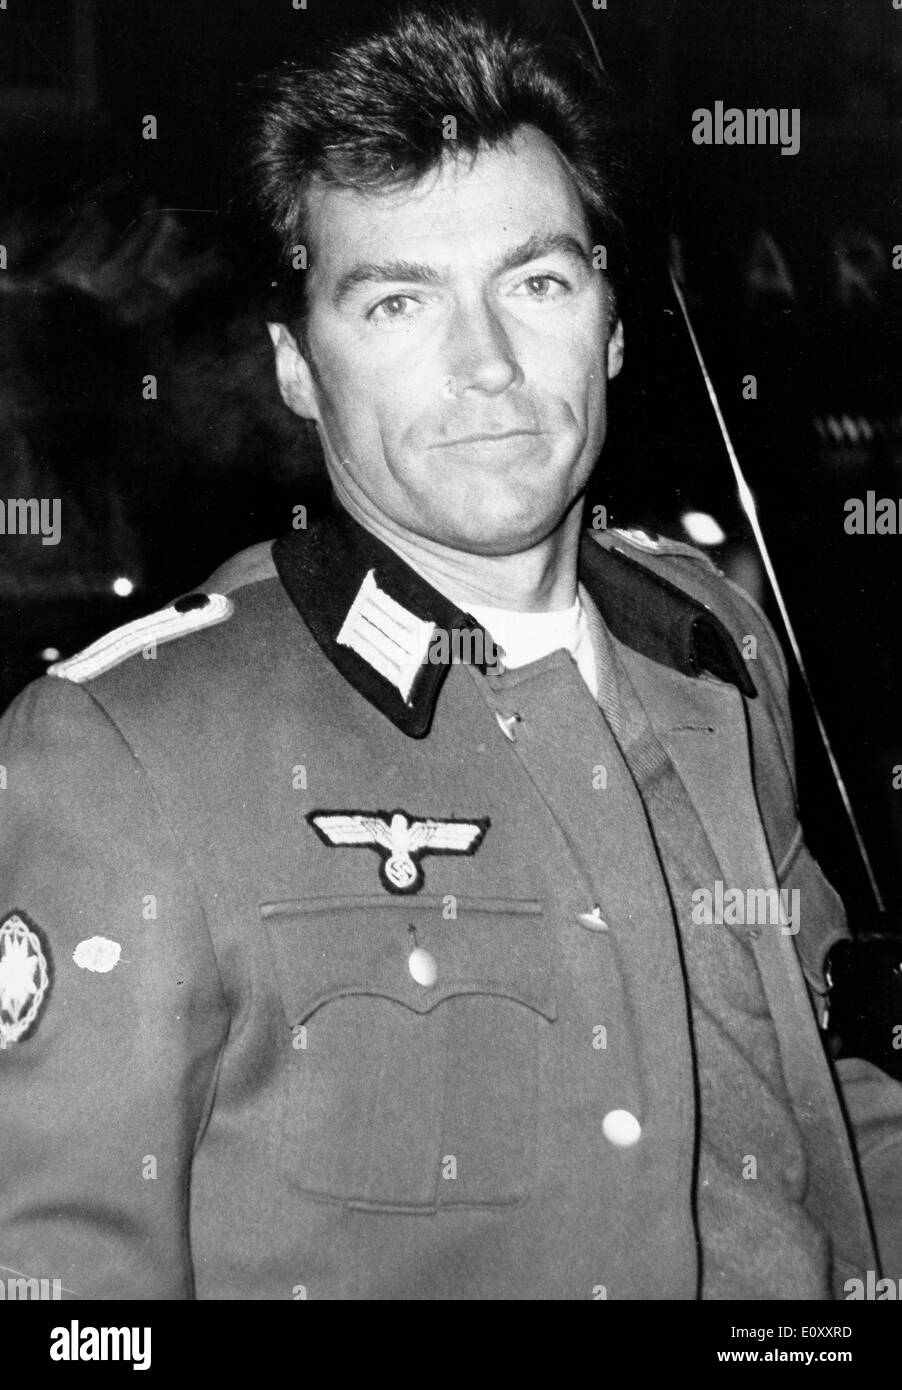 Actor Clint Eastwood dressed in a military uniform - Stock Image